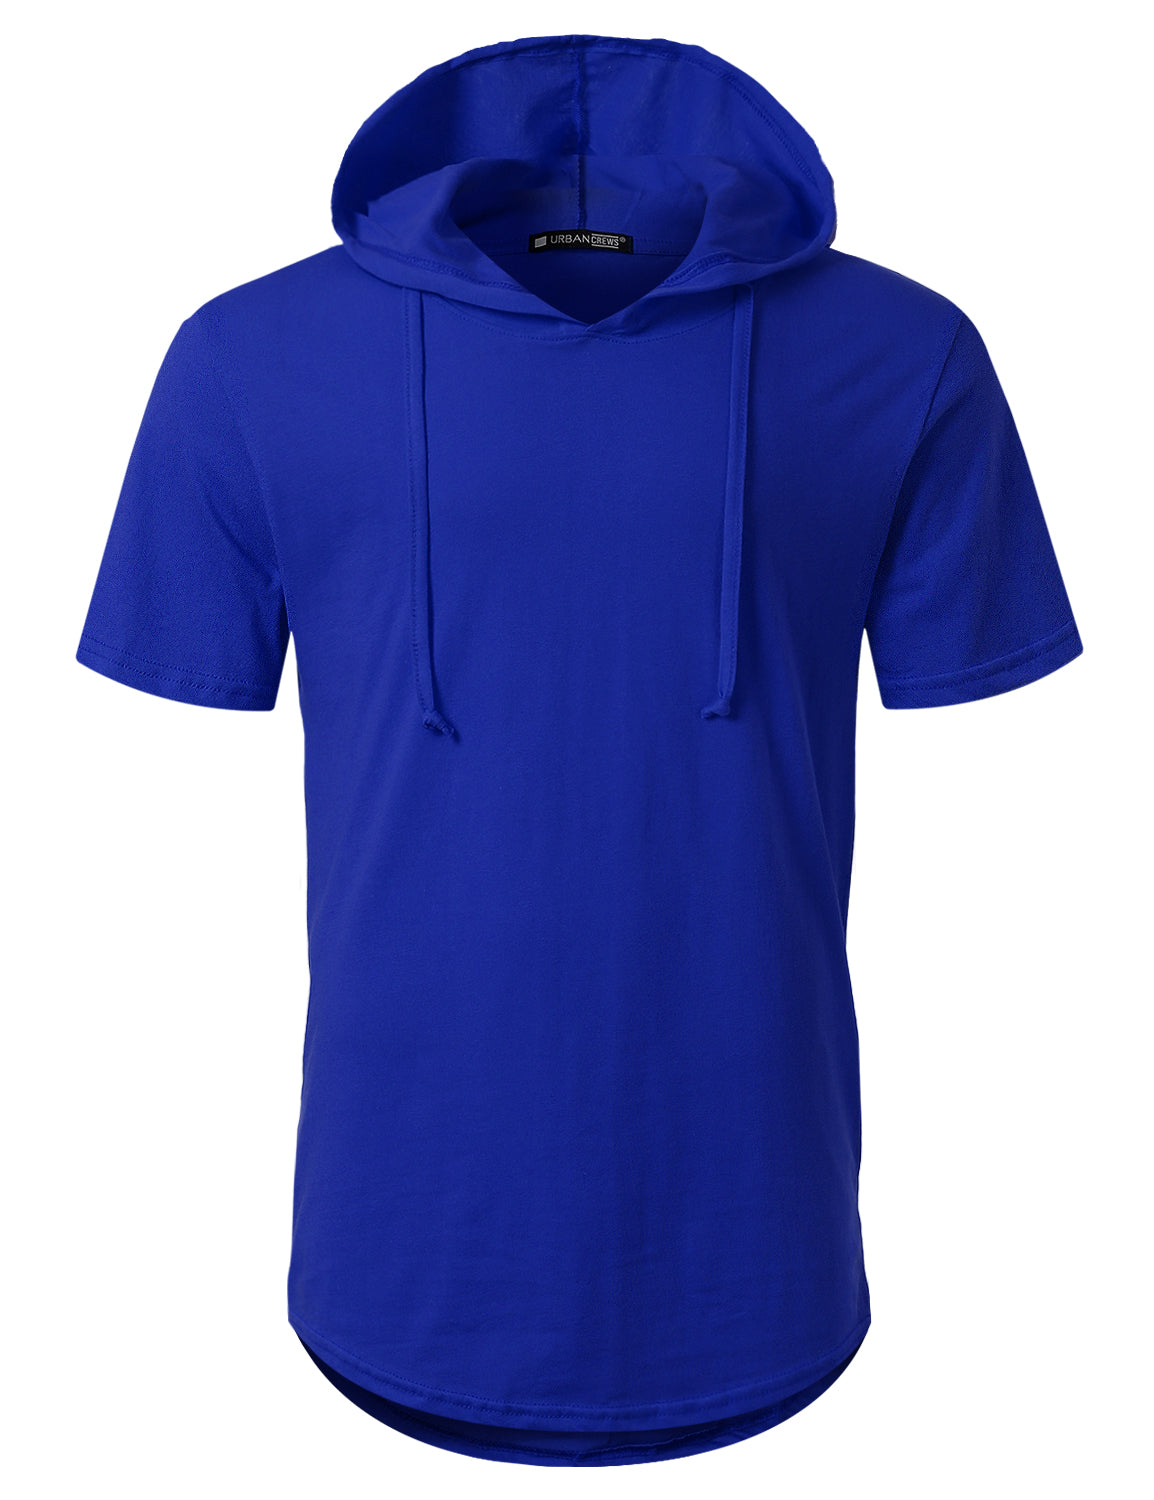 ROYALBLUE Short Sleeve Pullover Hoodie Shirt - URBANCREWS